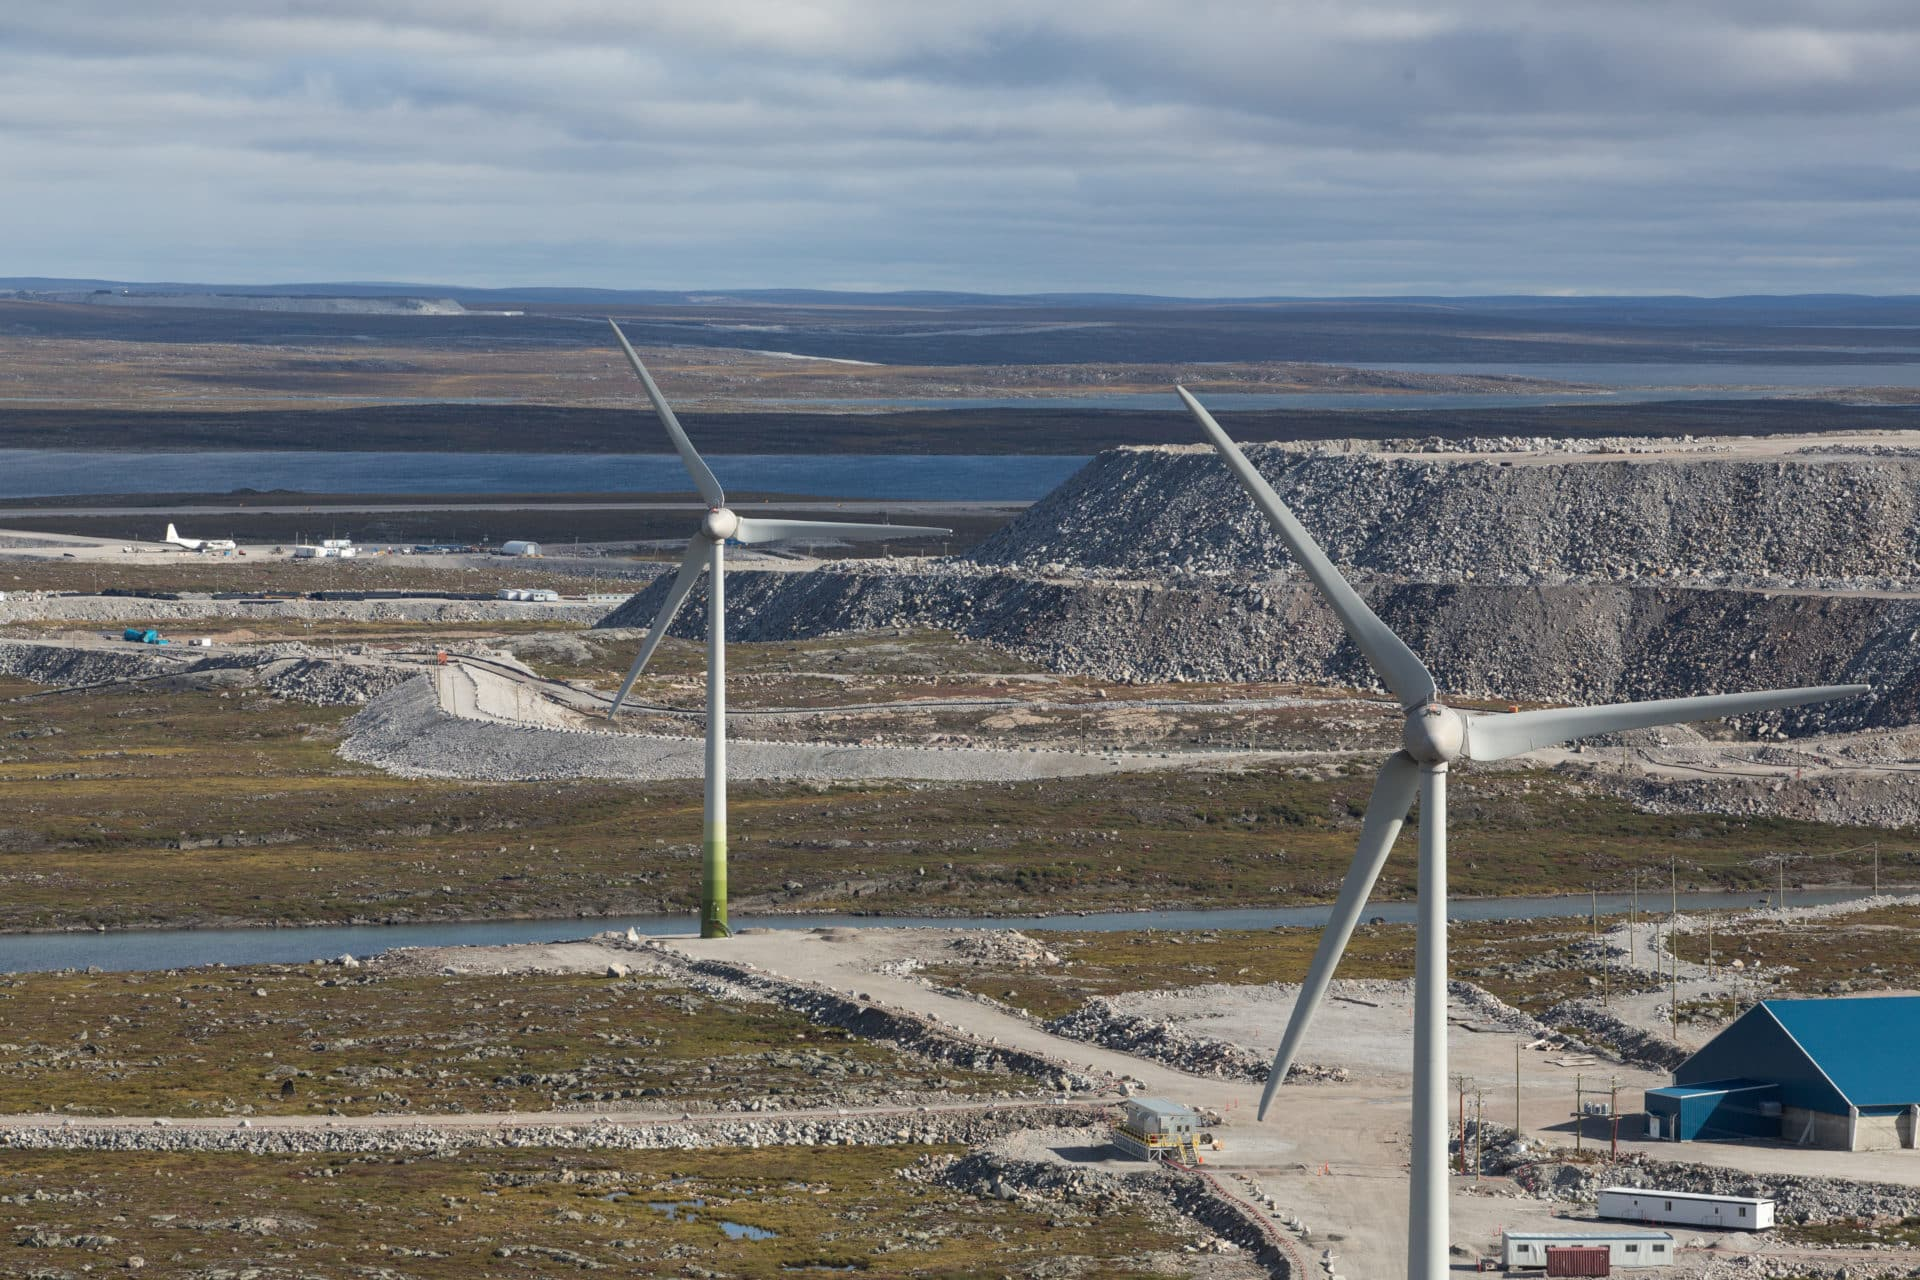 Wind farm at Diavik diamond mine